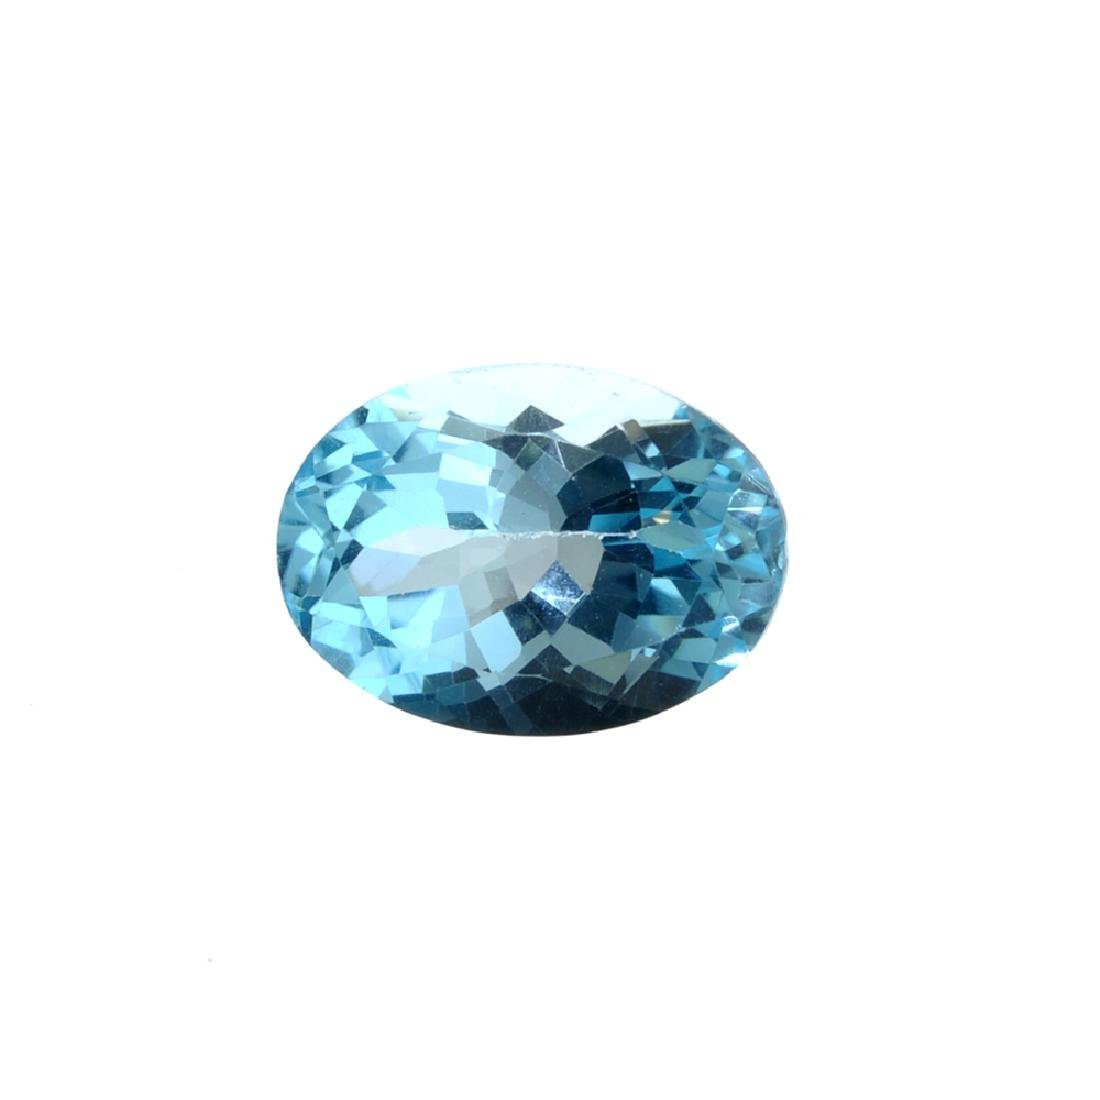 APP: 0.4k 14.37CT Oval Cut Blue Topaz Gemstone